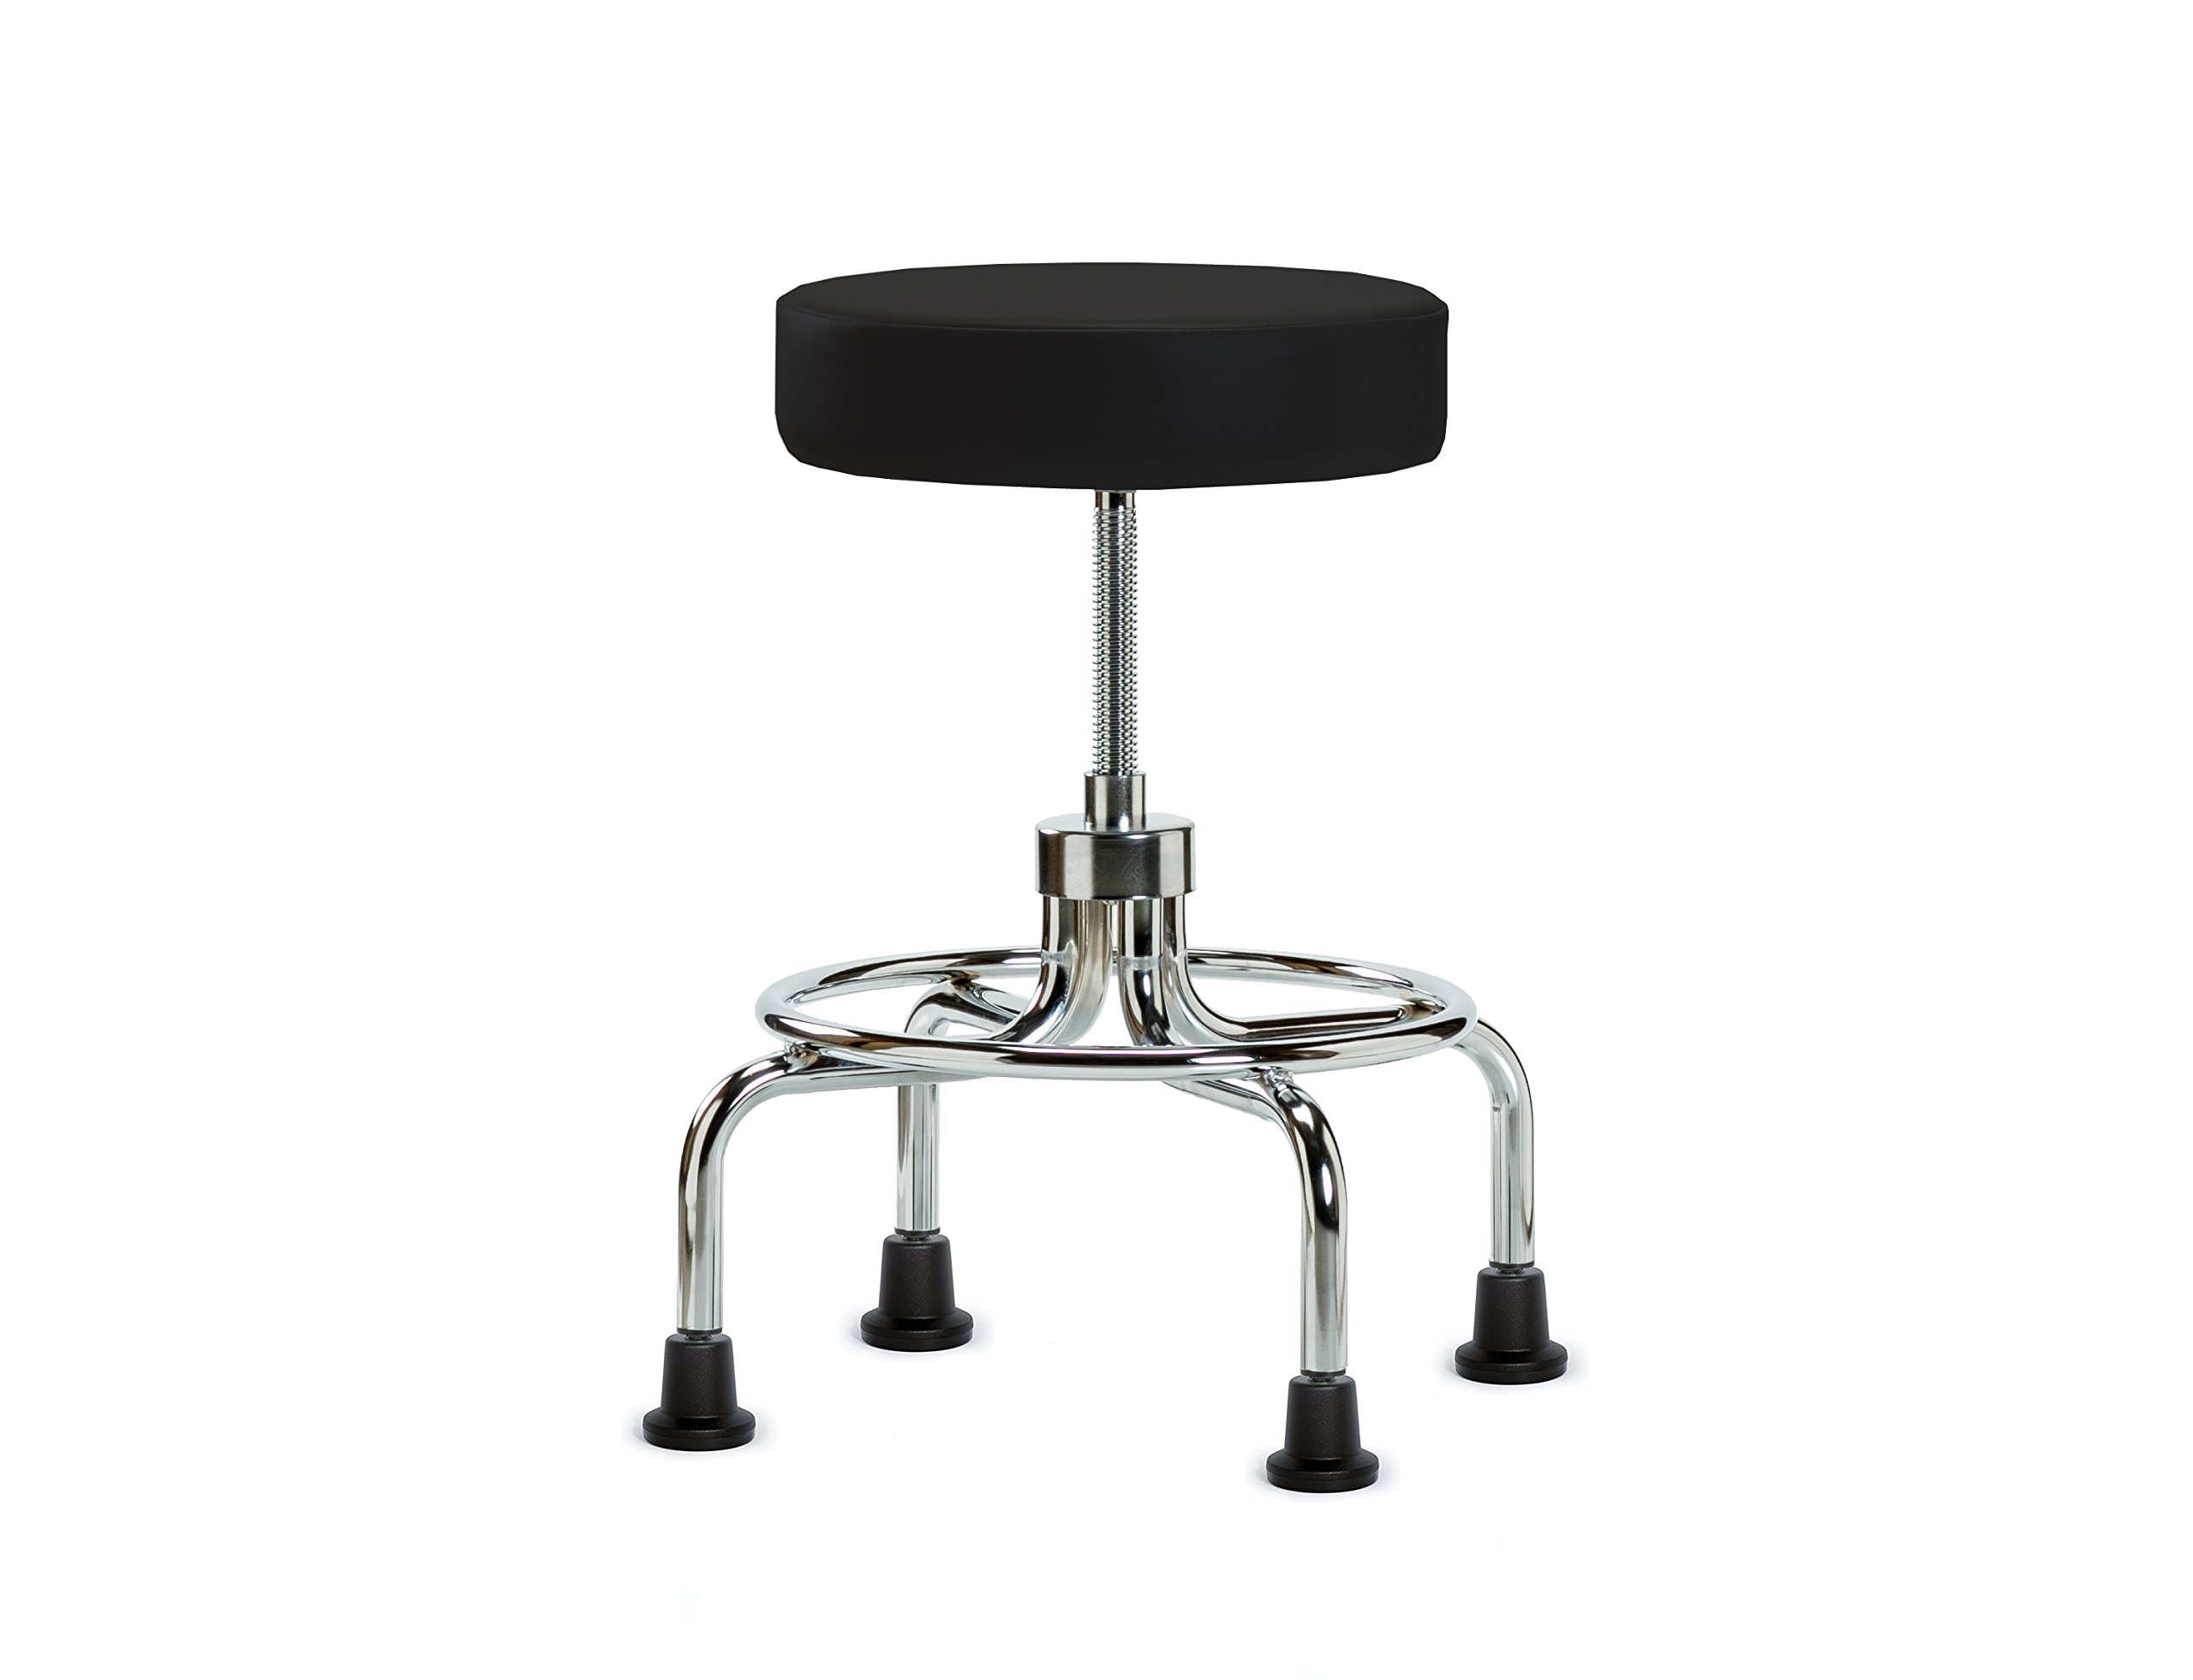 Perch Retro Rolling Exam Stool with Stationary Caps, Black Vinyl by Perch Chairs & Stools